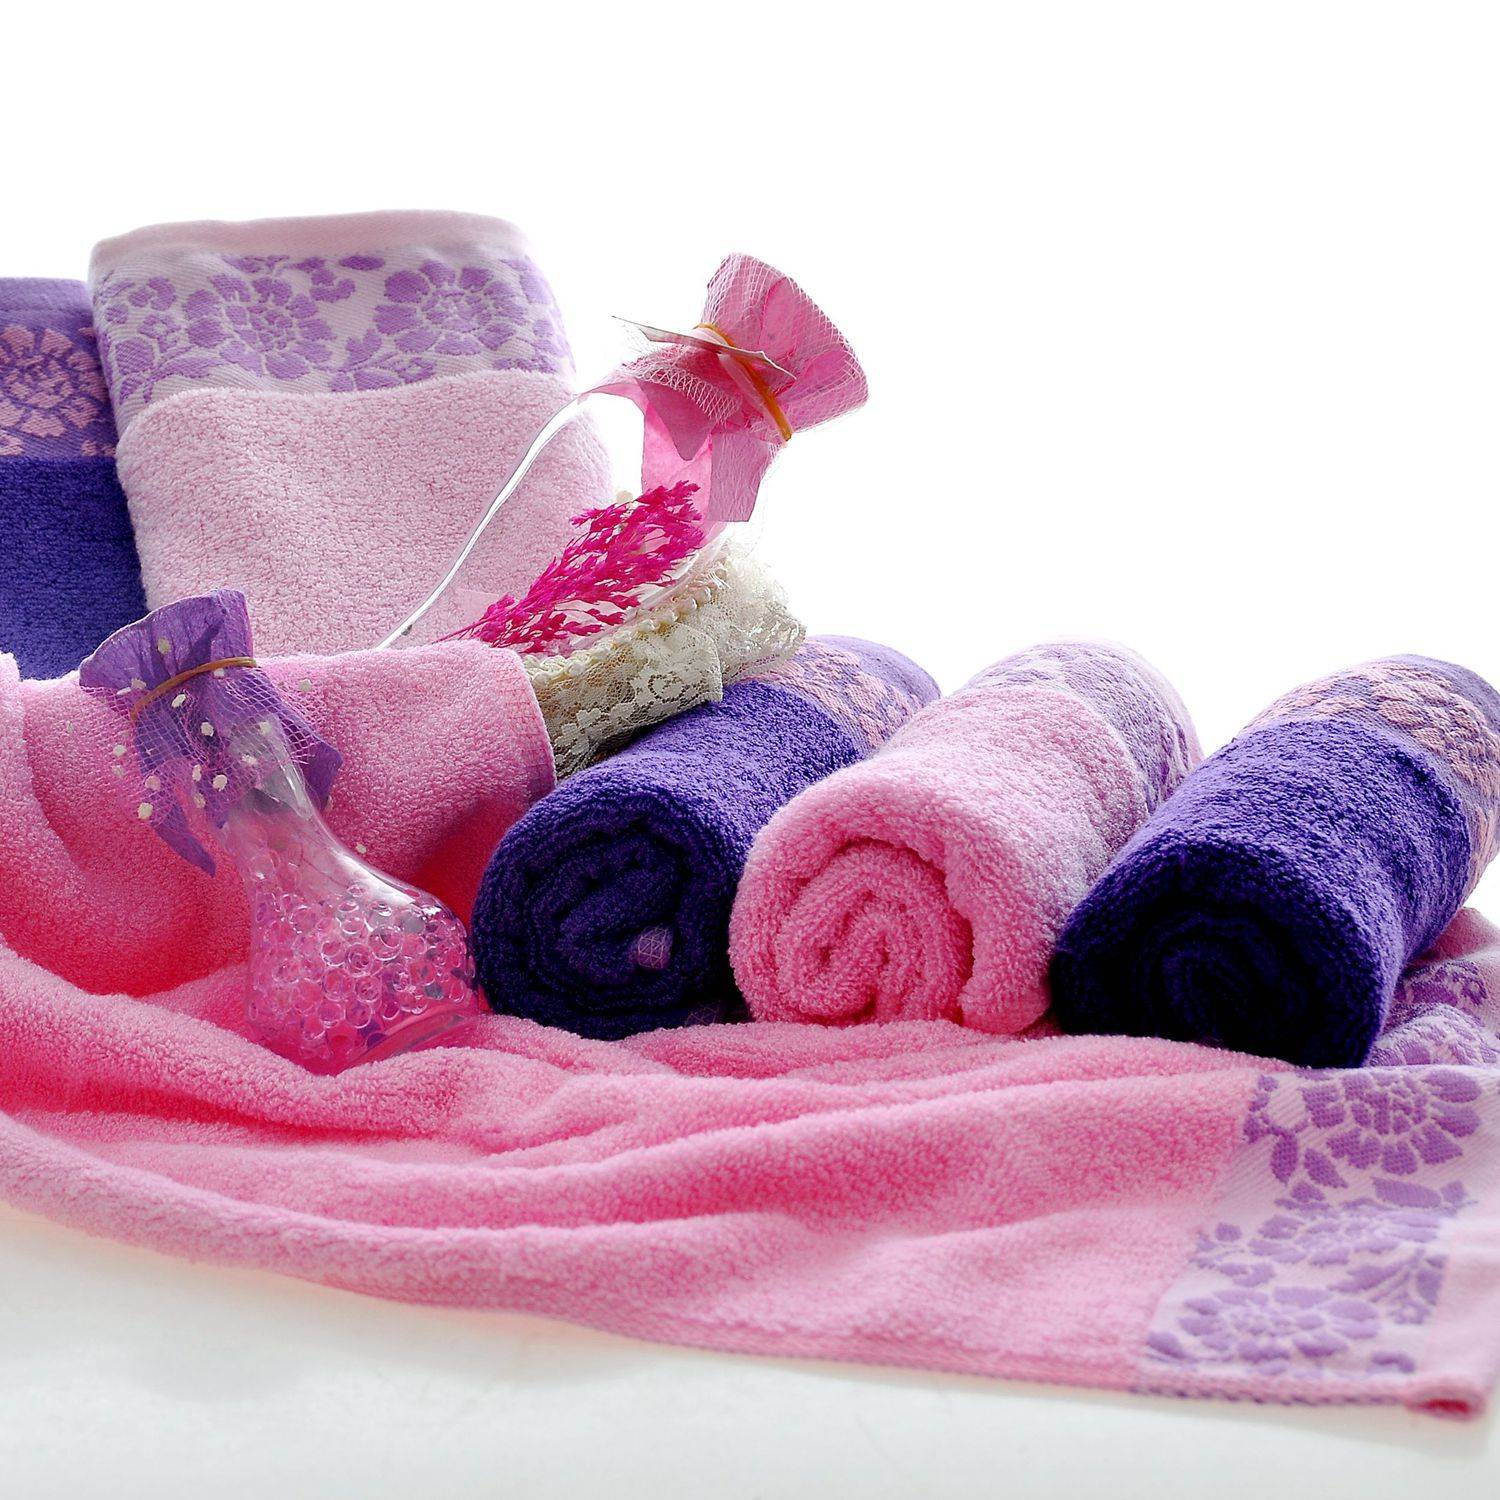 all kinds of 100% cotton beach towel, bath towel, hotel towel, home towel